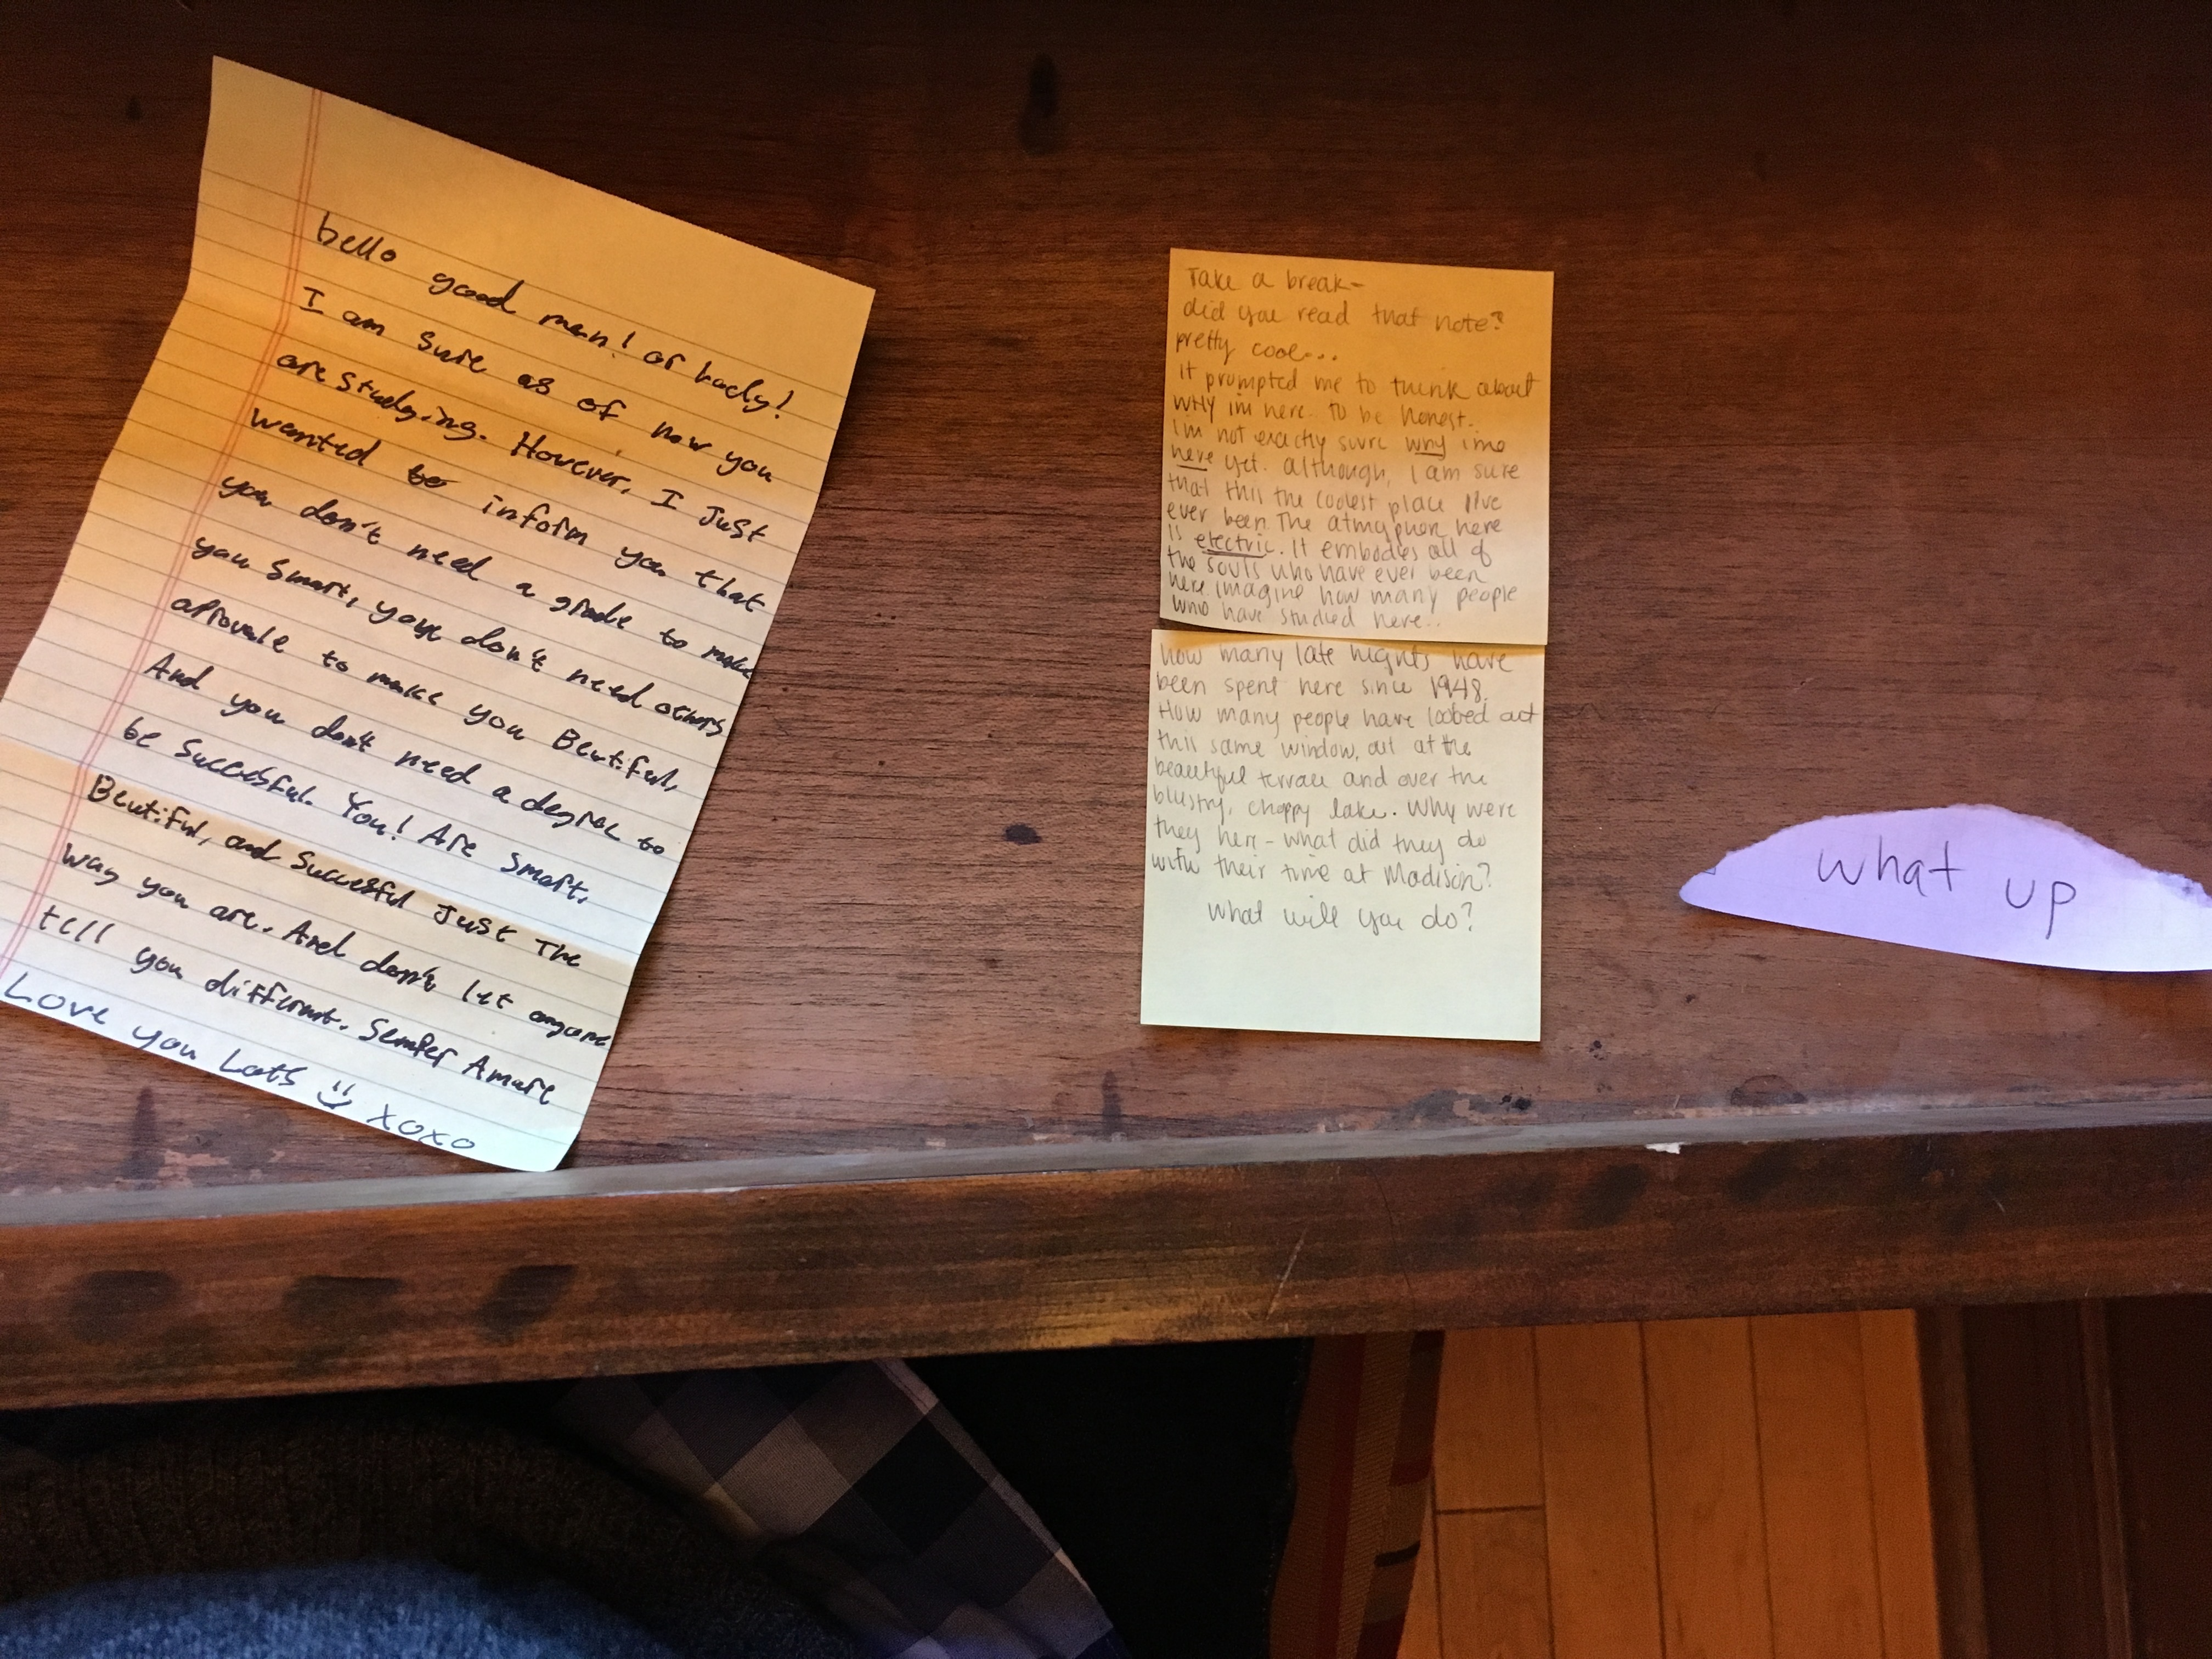 The front table harbors notes from contemplative students. (Photo by Eric Hamilton)